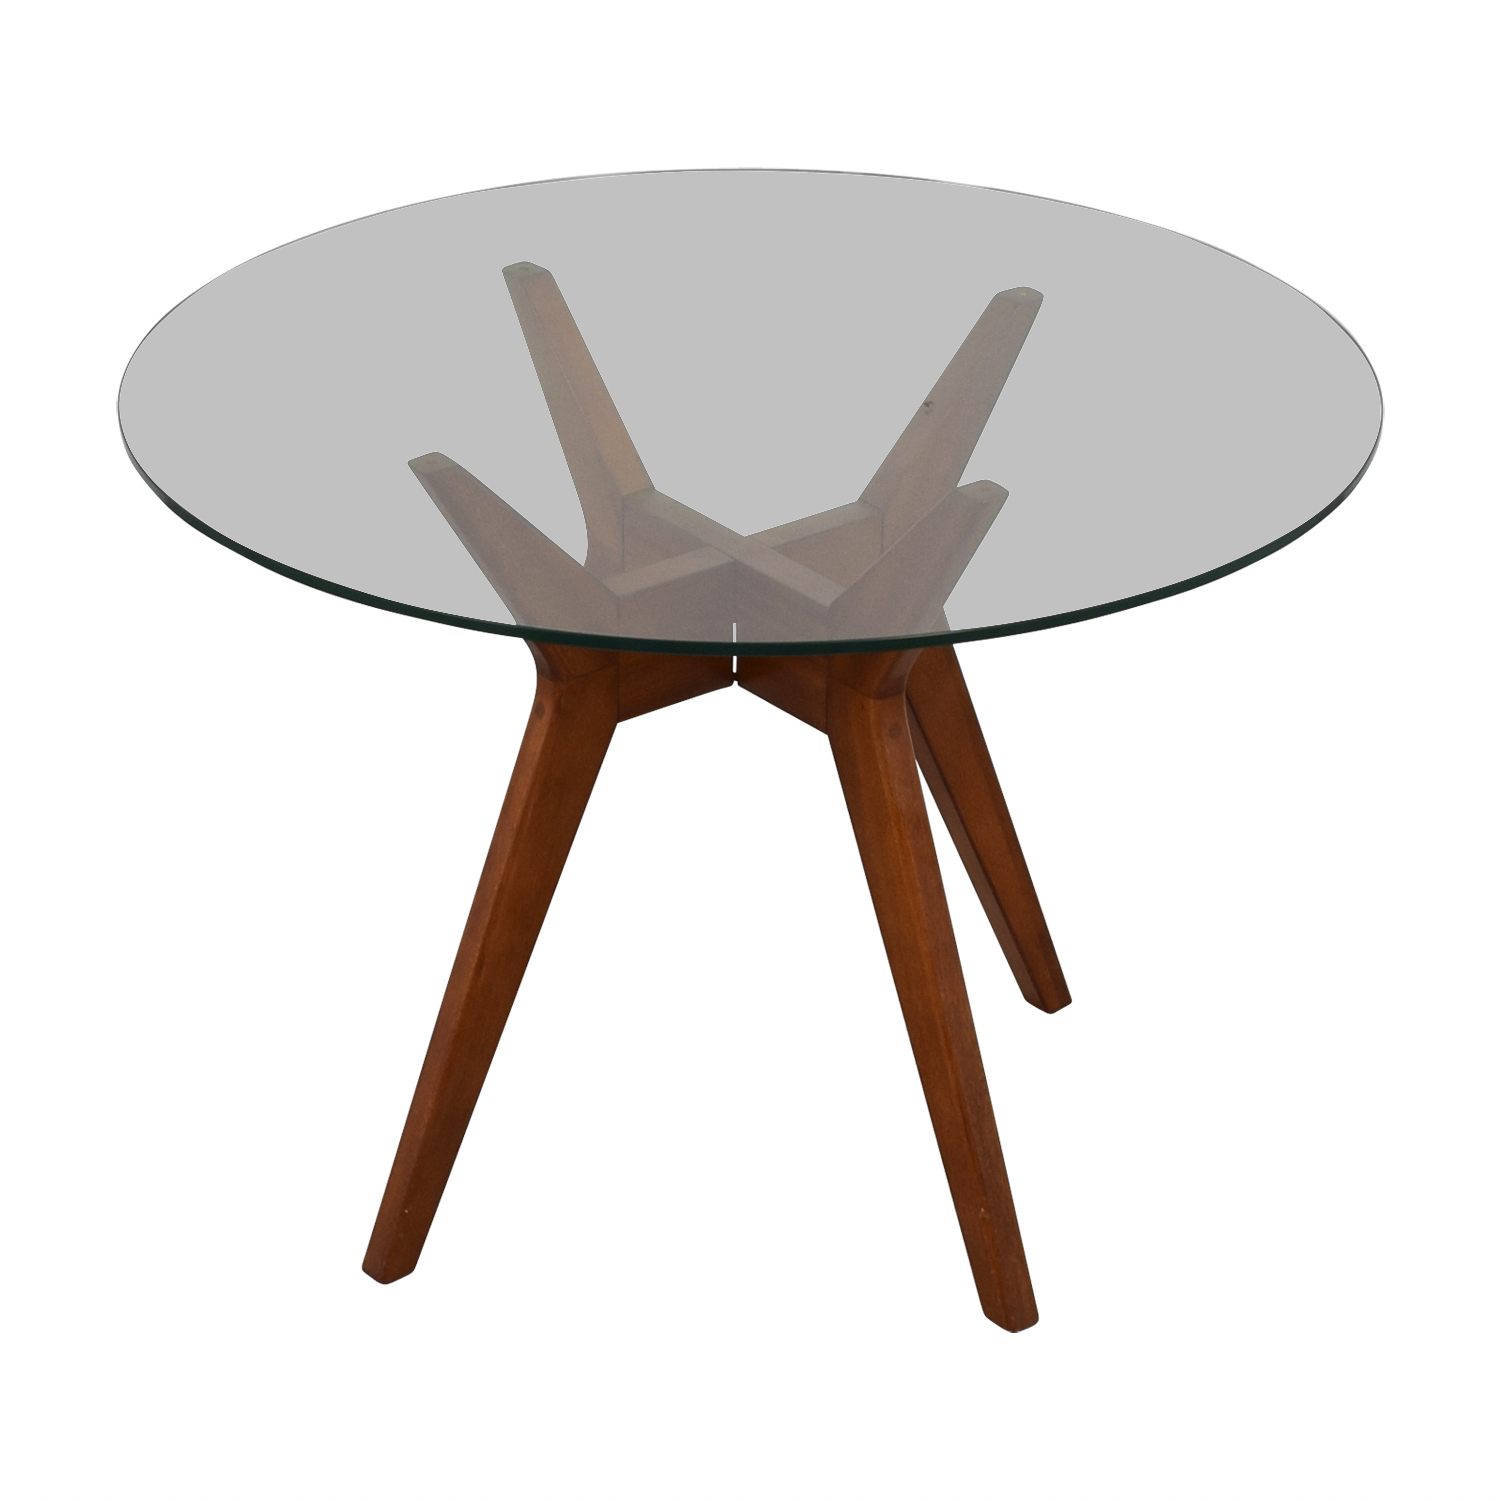 OFF West Elm West Elm Round Glass Dining Table Chairs - West elm table and chairs